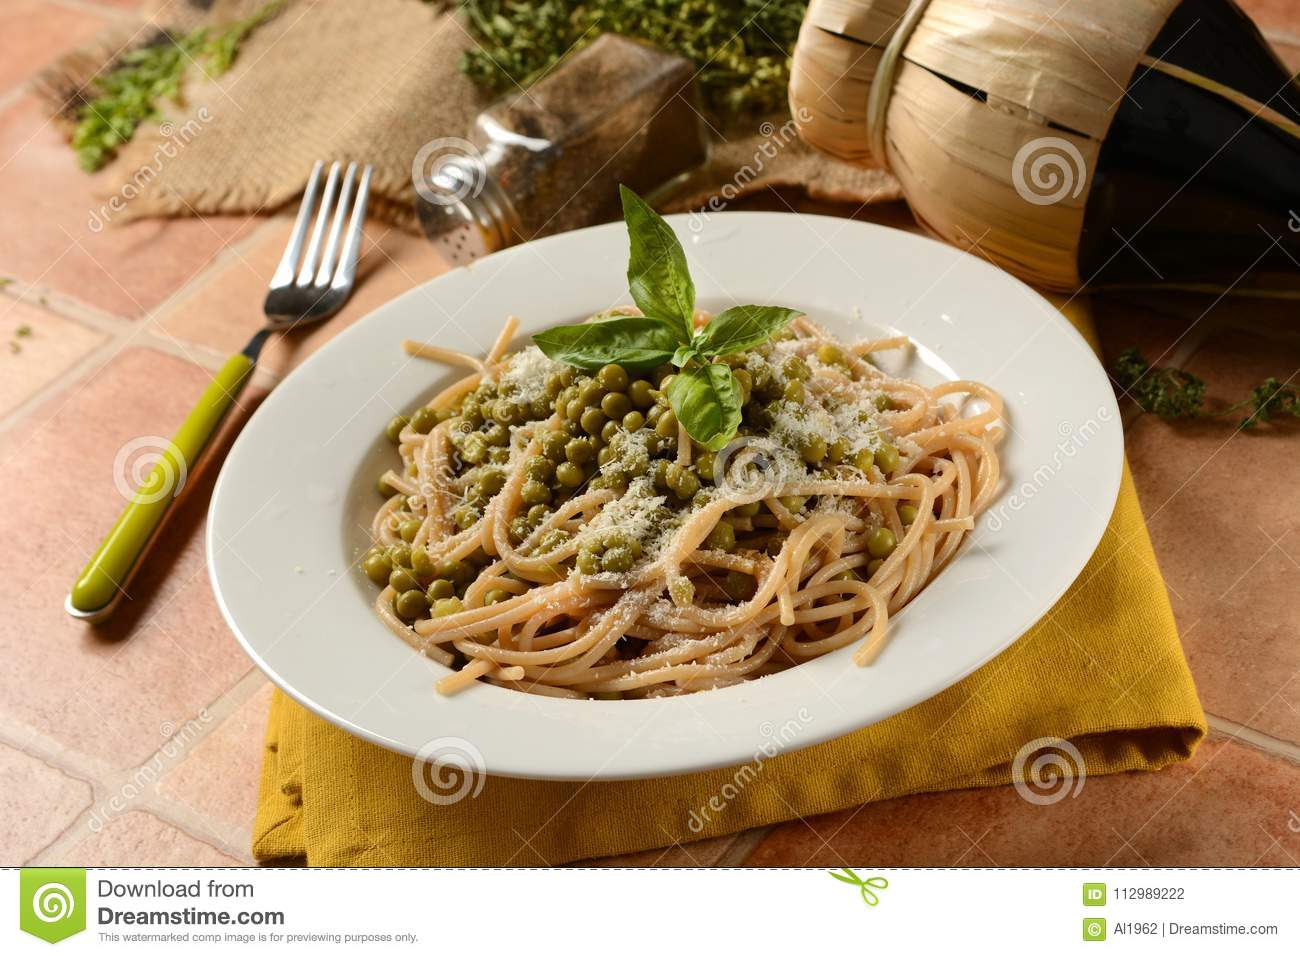 Spaghetti with peas and cheese